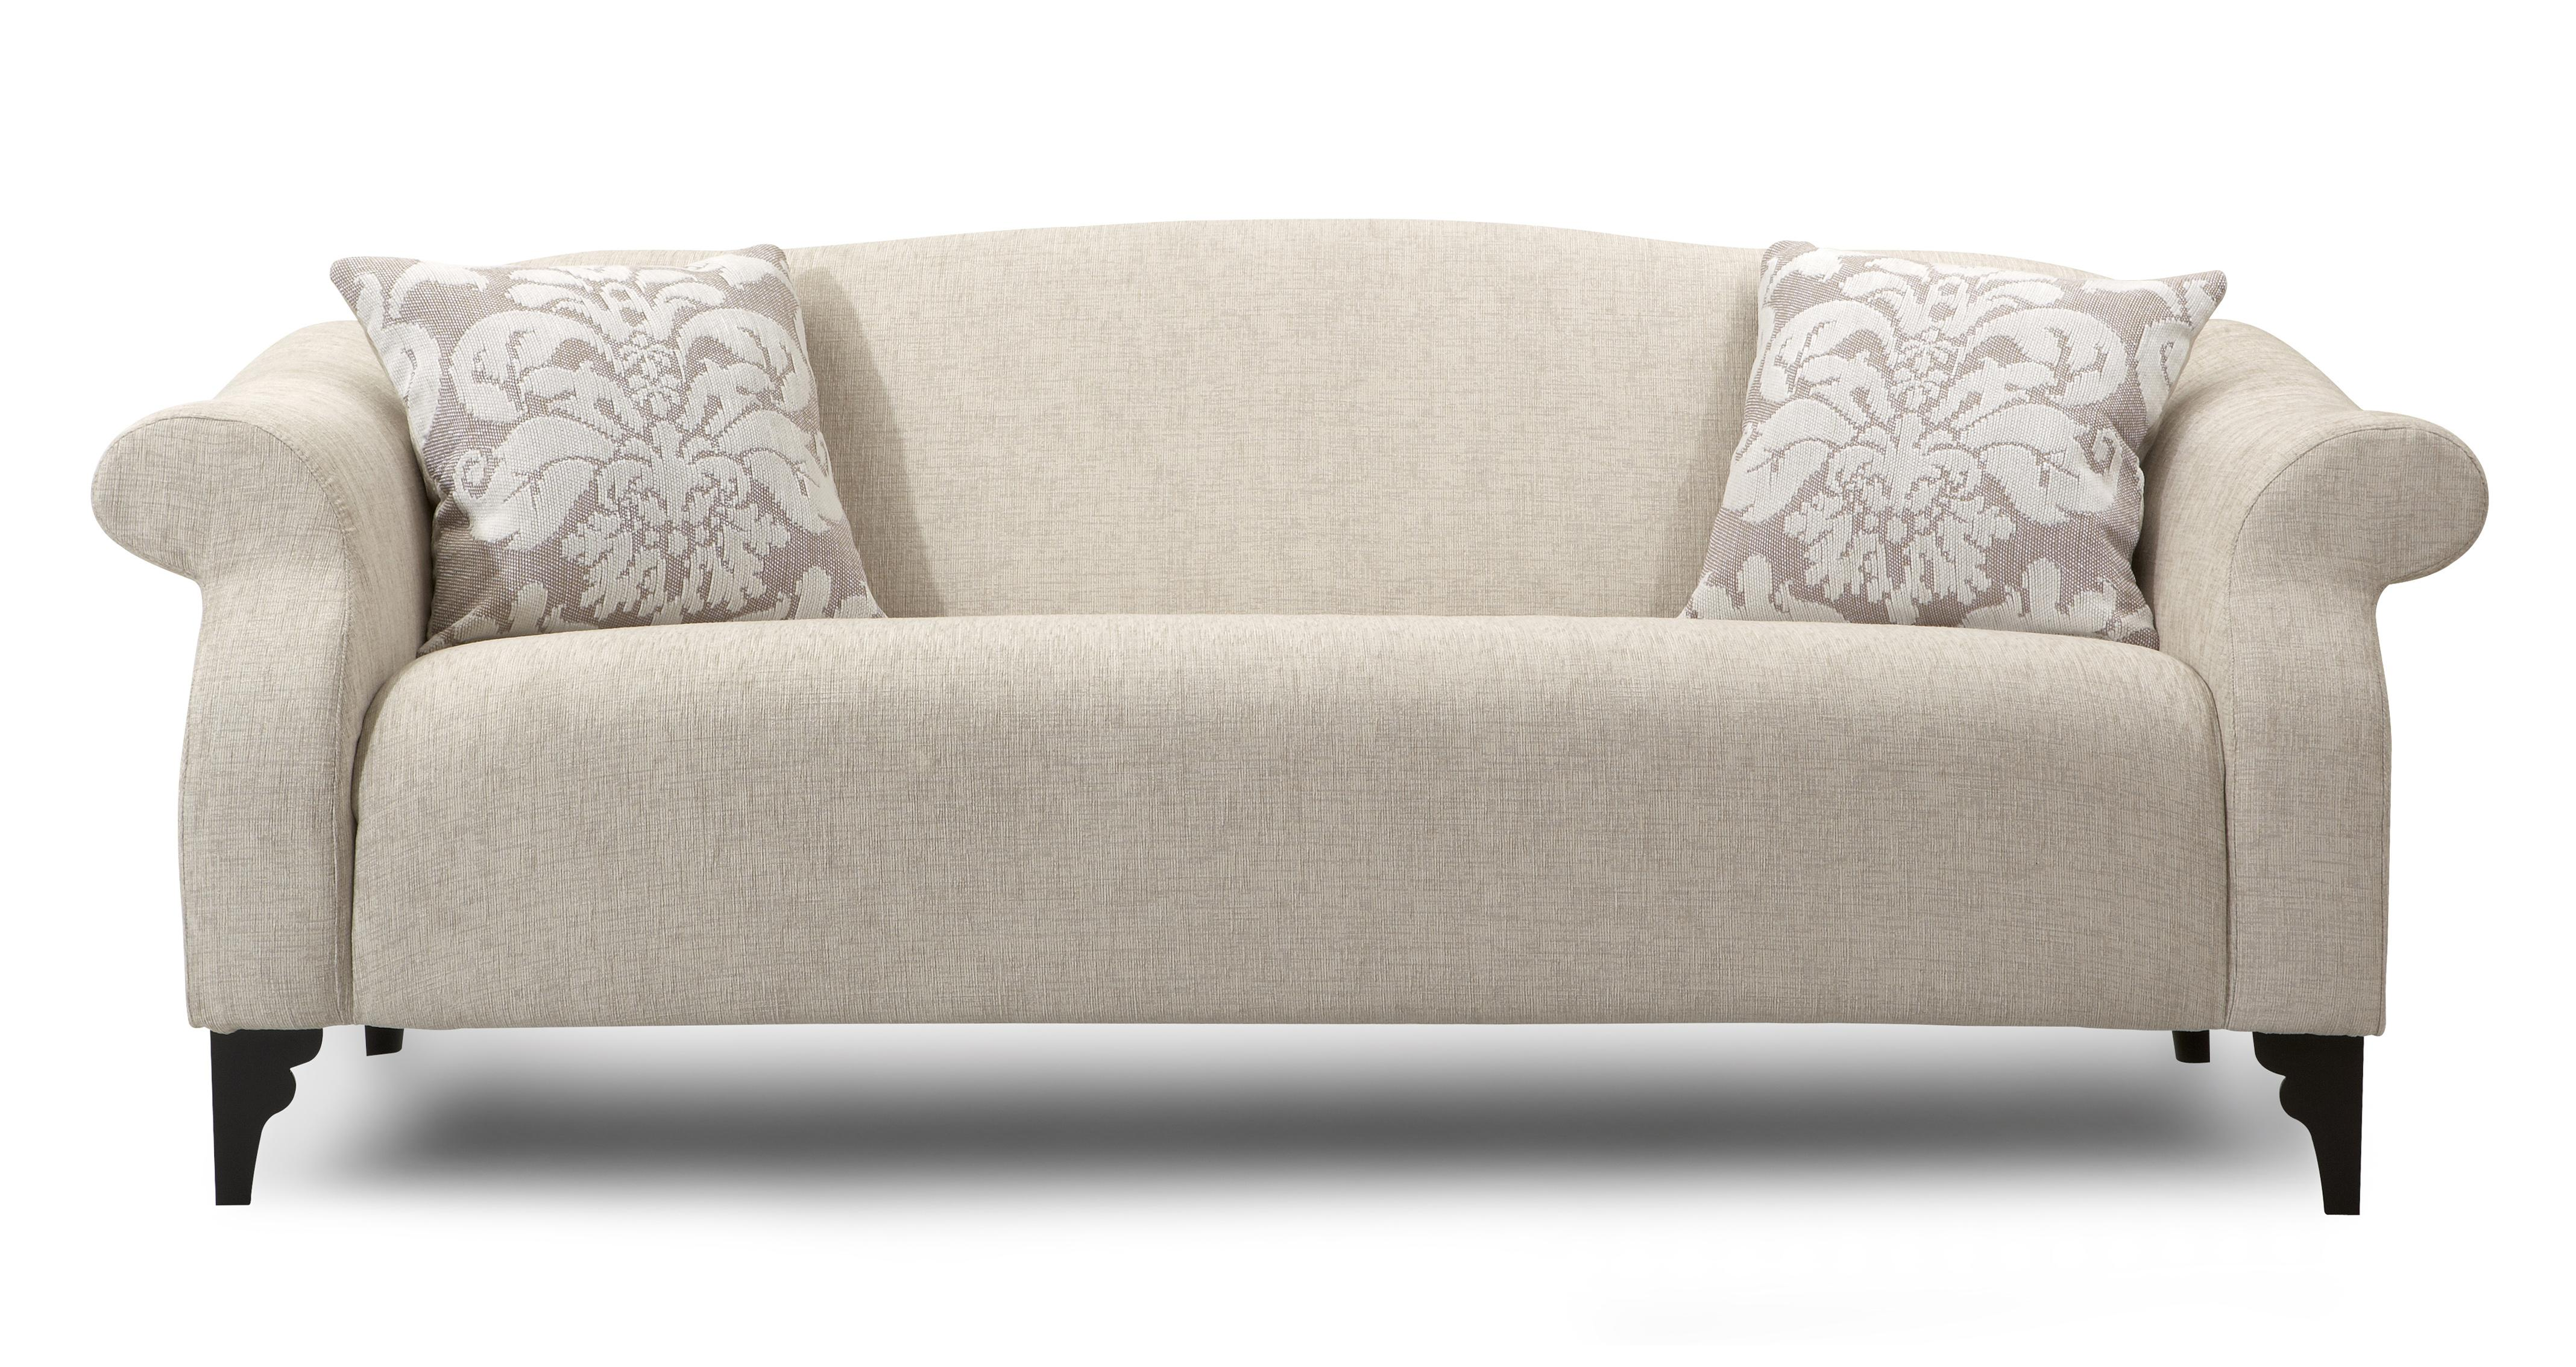 dfs icon set large fabric sofa including chaise chair foot